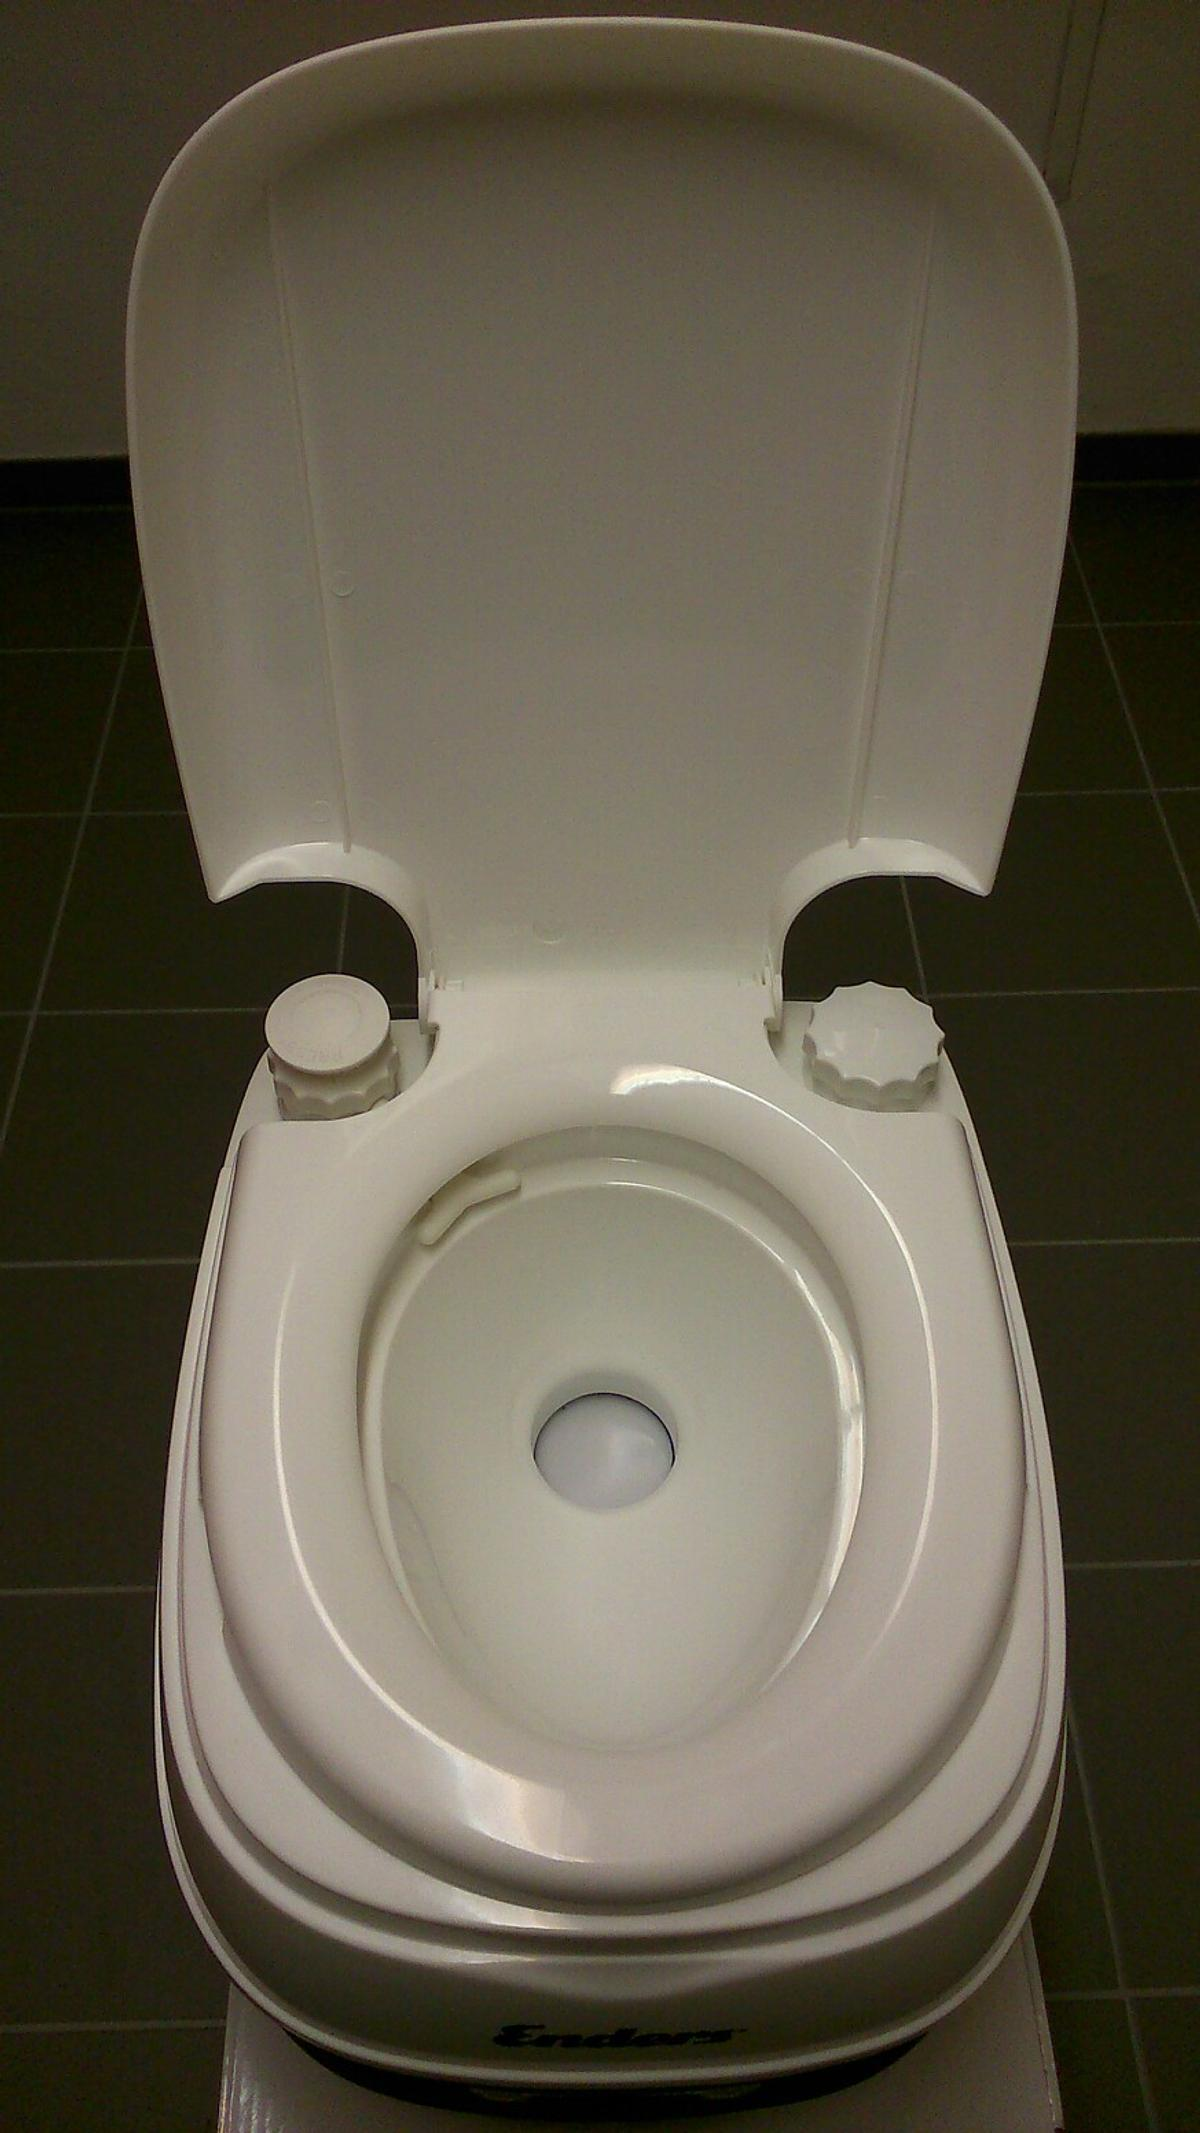 Mobil WC Enders Deluxe, Campingtoilette